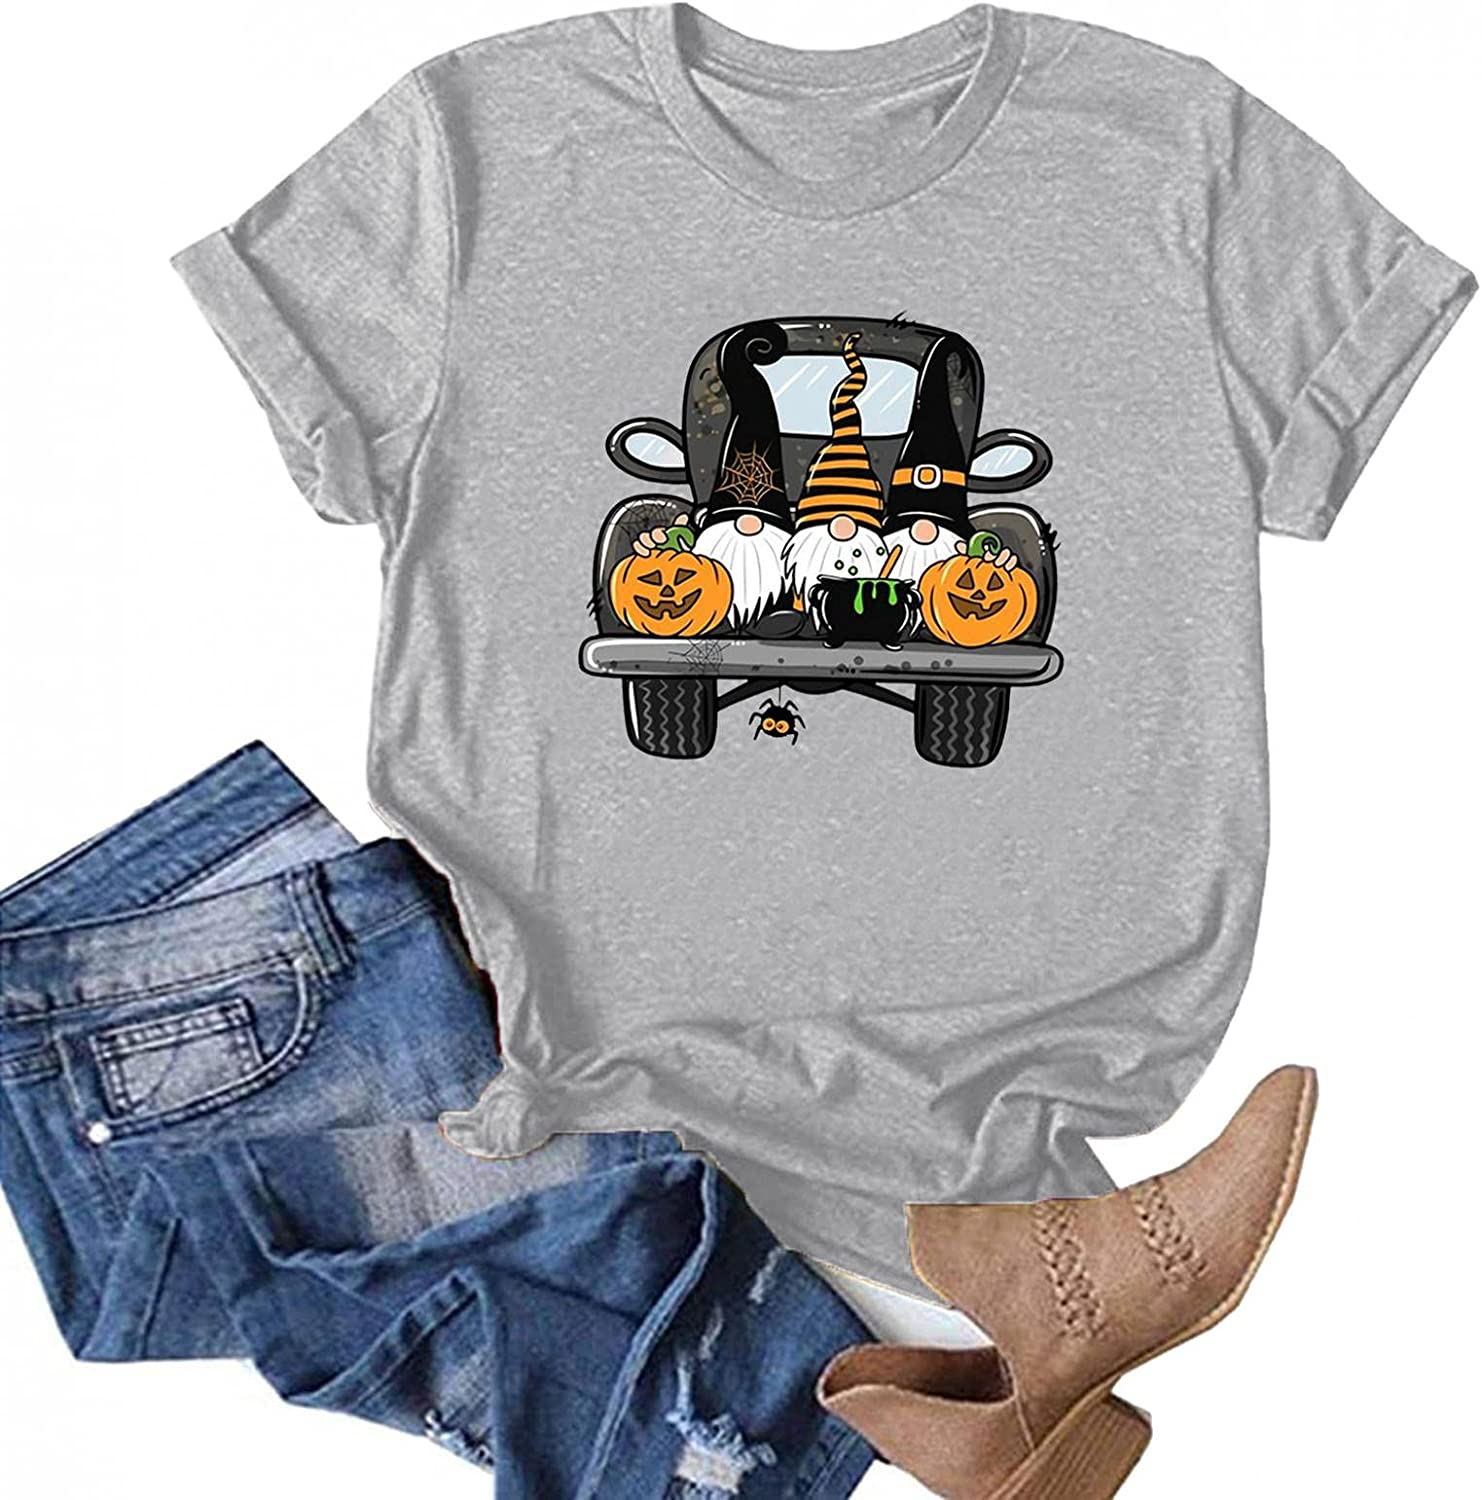 AODONG Womens Tops for Halloween Gnomes Graphic T-Shirts Tee Tops Short Sleeves Pullover Blouse Halloween